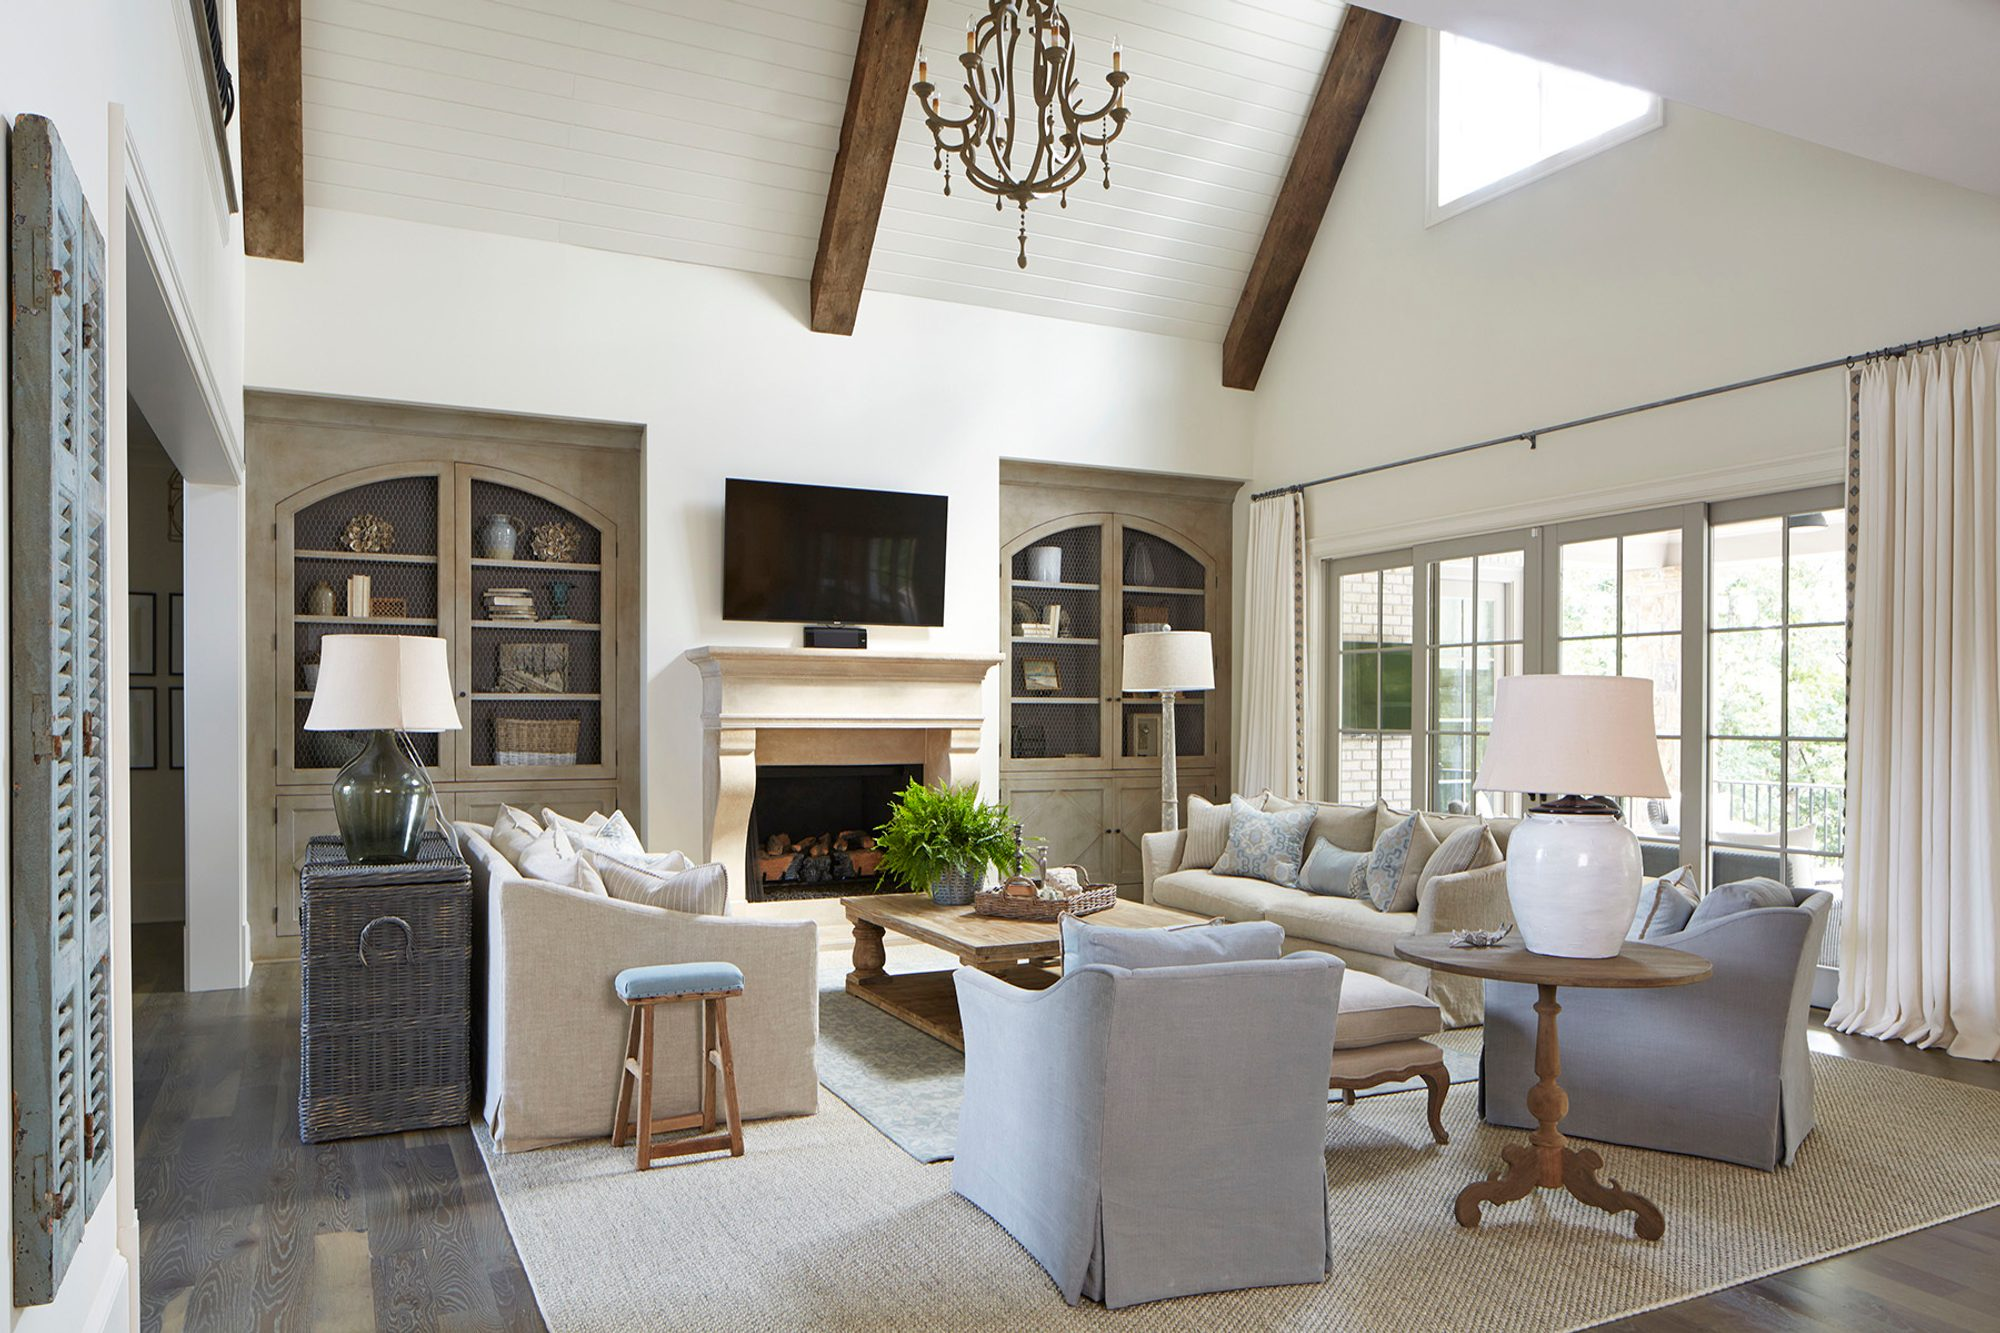 beautiful living room with vaulted ceilings, exposed wood ceiling beams and shiplap. vaulted ceilings pros and cons.